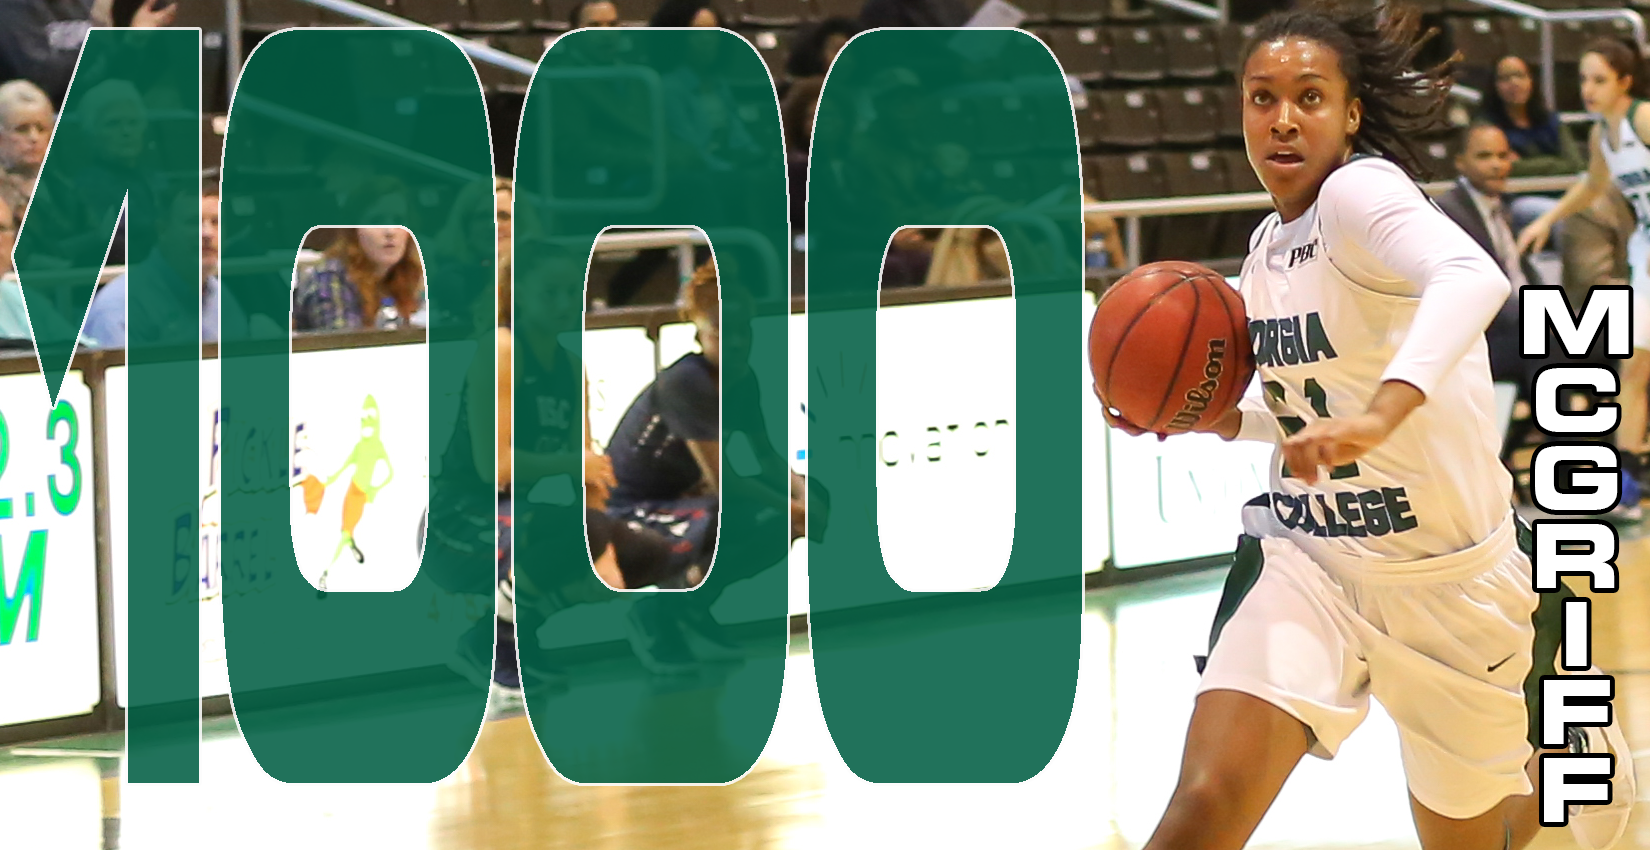 Senior forward Alyah McGriff scored her 1,000th career point at Augusta